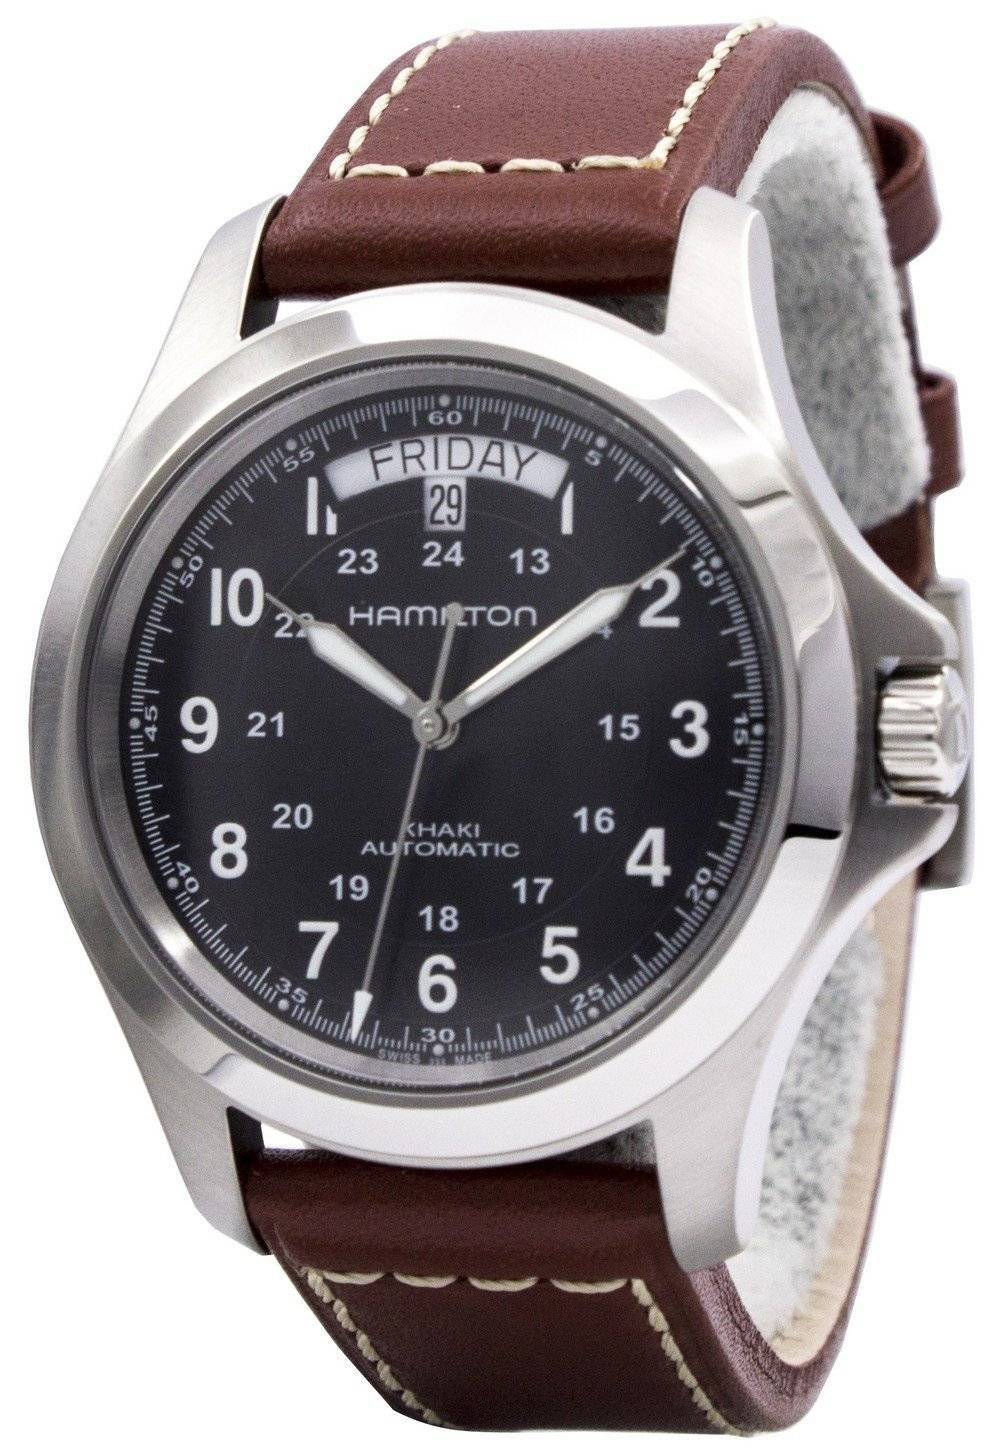 Which Hamilton mechanical watch do you think is the best?